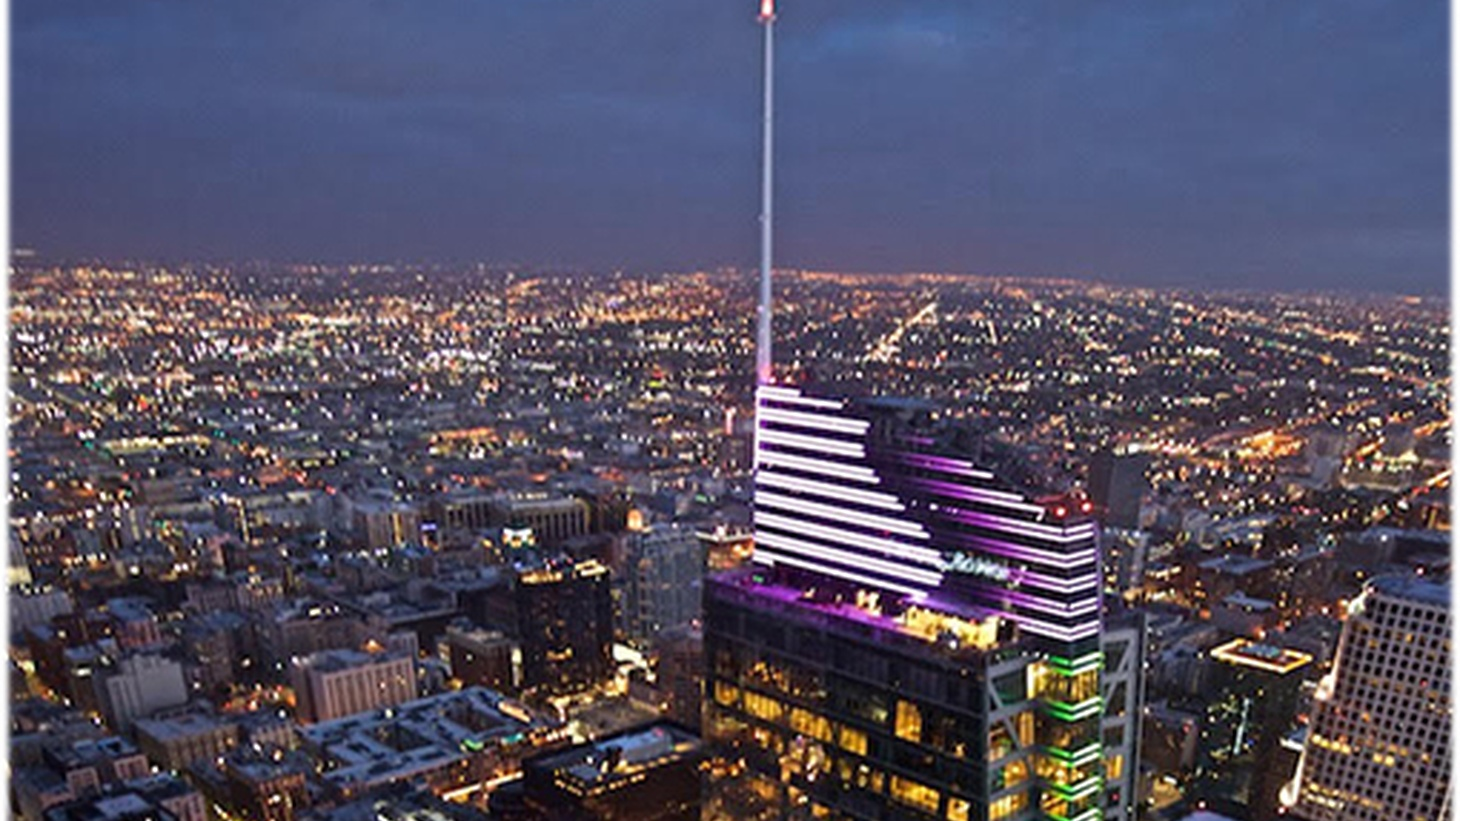 The Wilshire Grand Center is the tallest building west of Chicago, thanks to its nearly 300-foot spire. The curved glass skyscraper will house a luxury InterContinental Hotel, offices, and several restaurants and bars. There's a cocktail bar on the tower's 73rd floor observation deck and a fancy steakhouse.